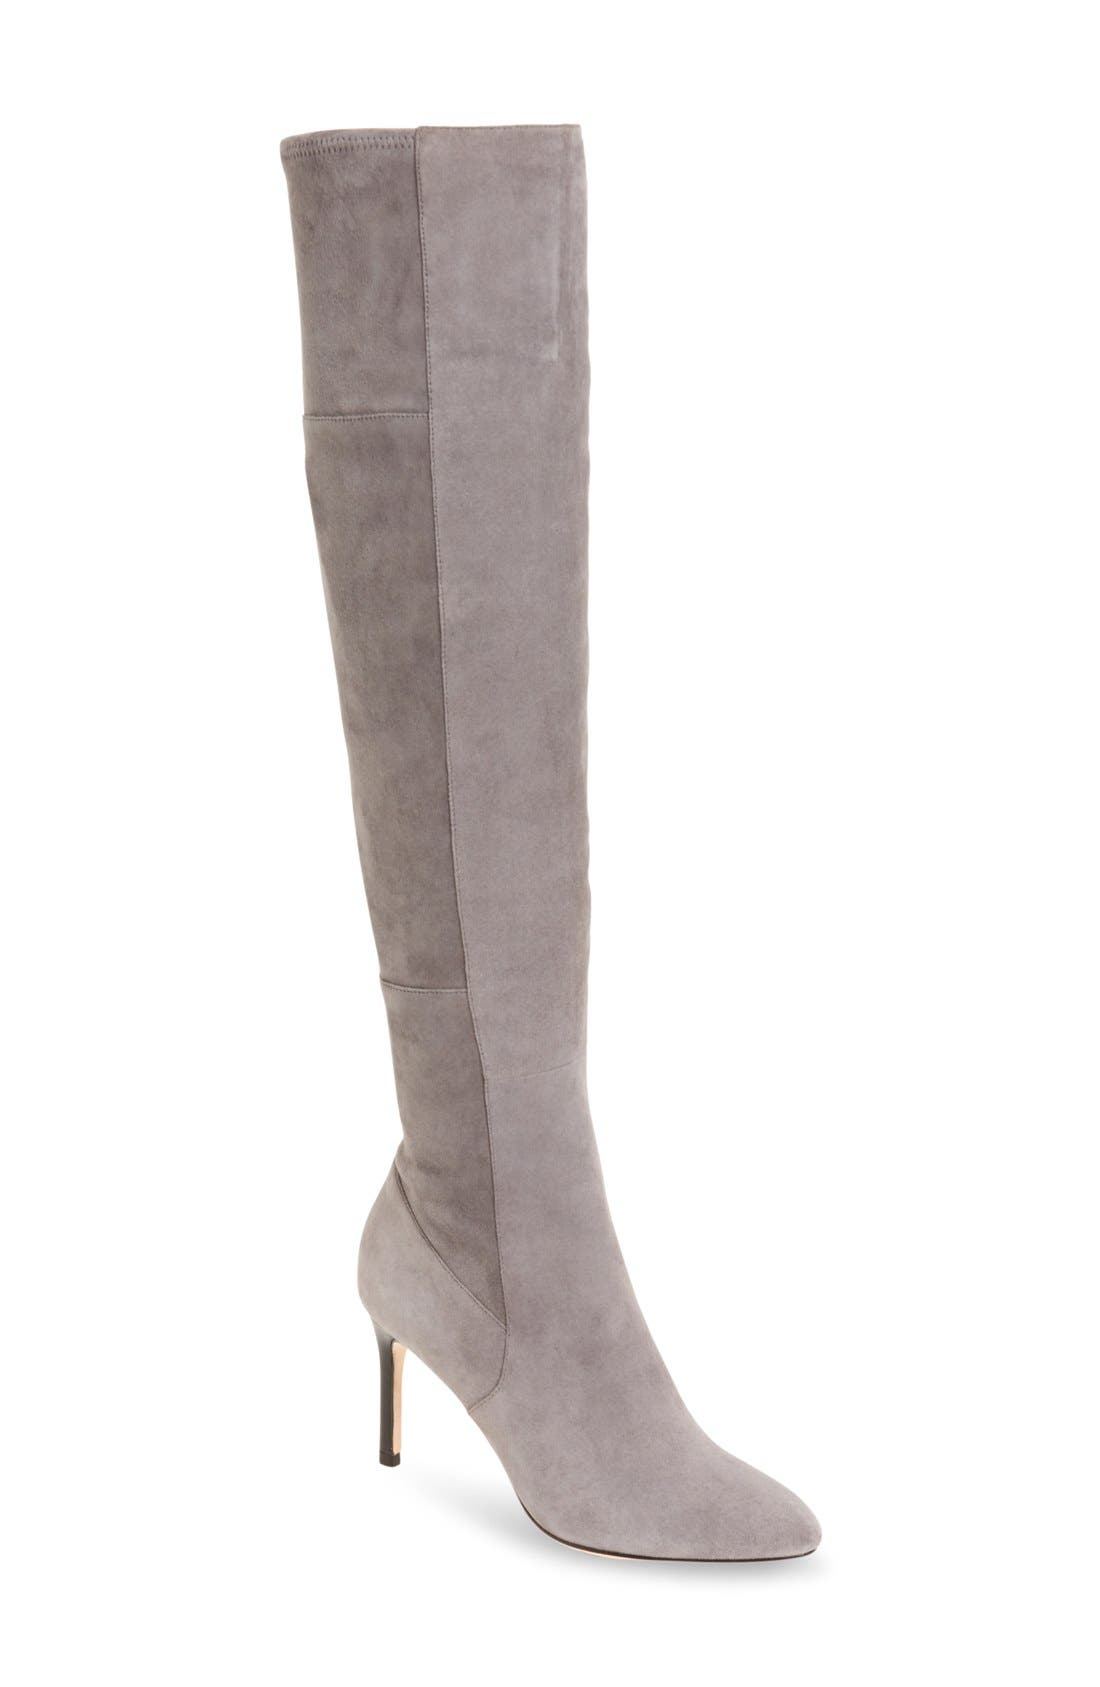 Main Image - Cole Haan 'Marina' Over the Knee Boot (Women)